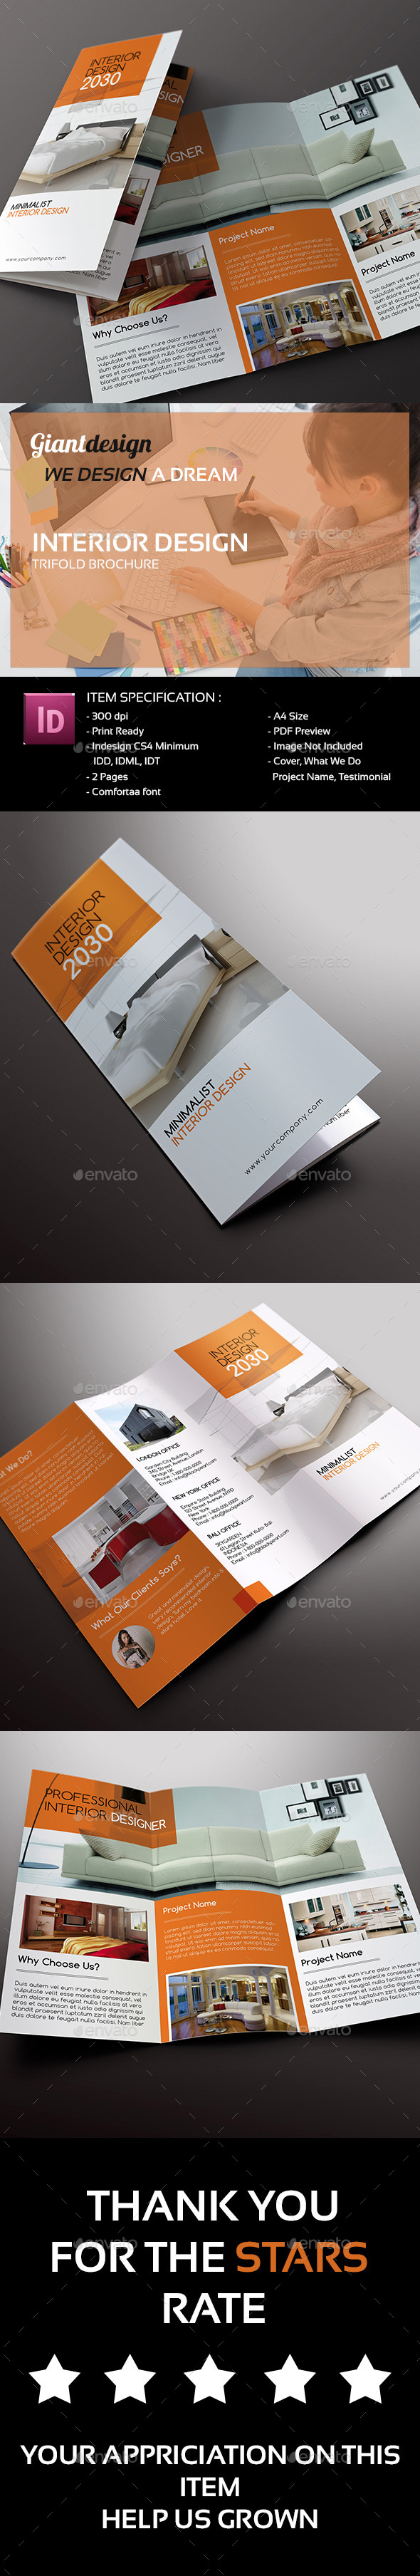 GraphicRiver Interior Design Trifold Brochure 9937713